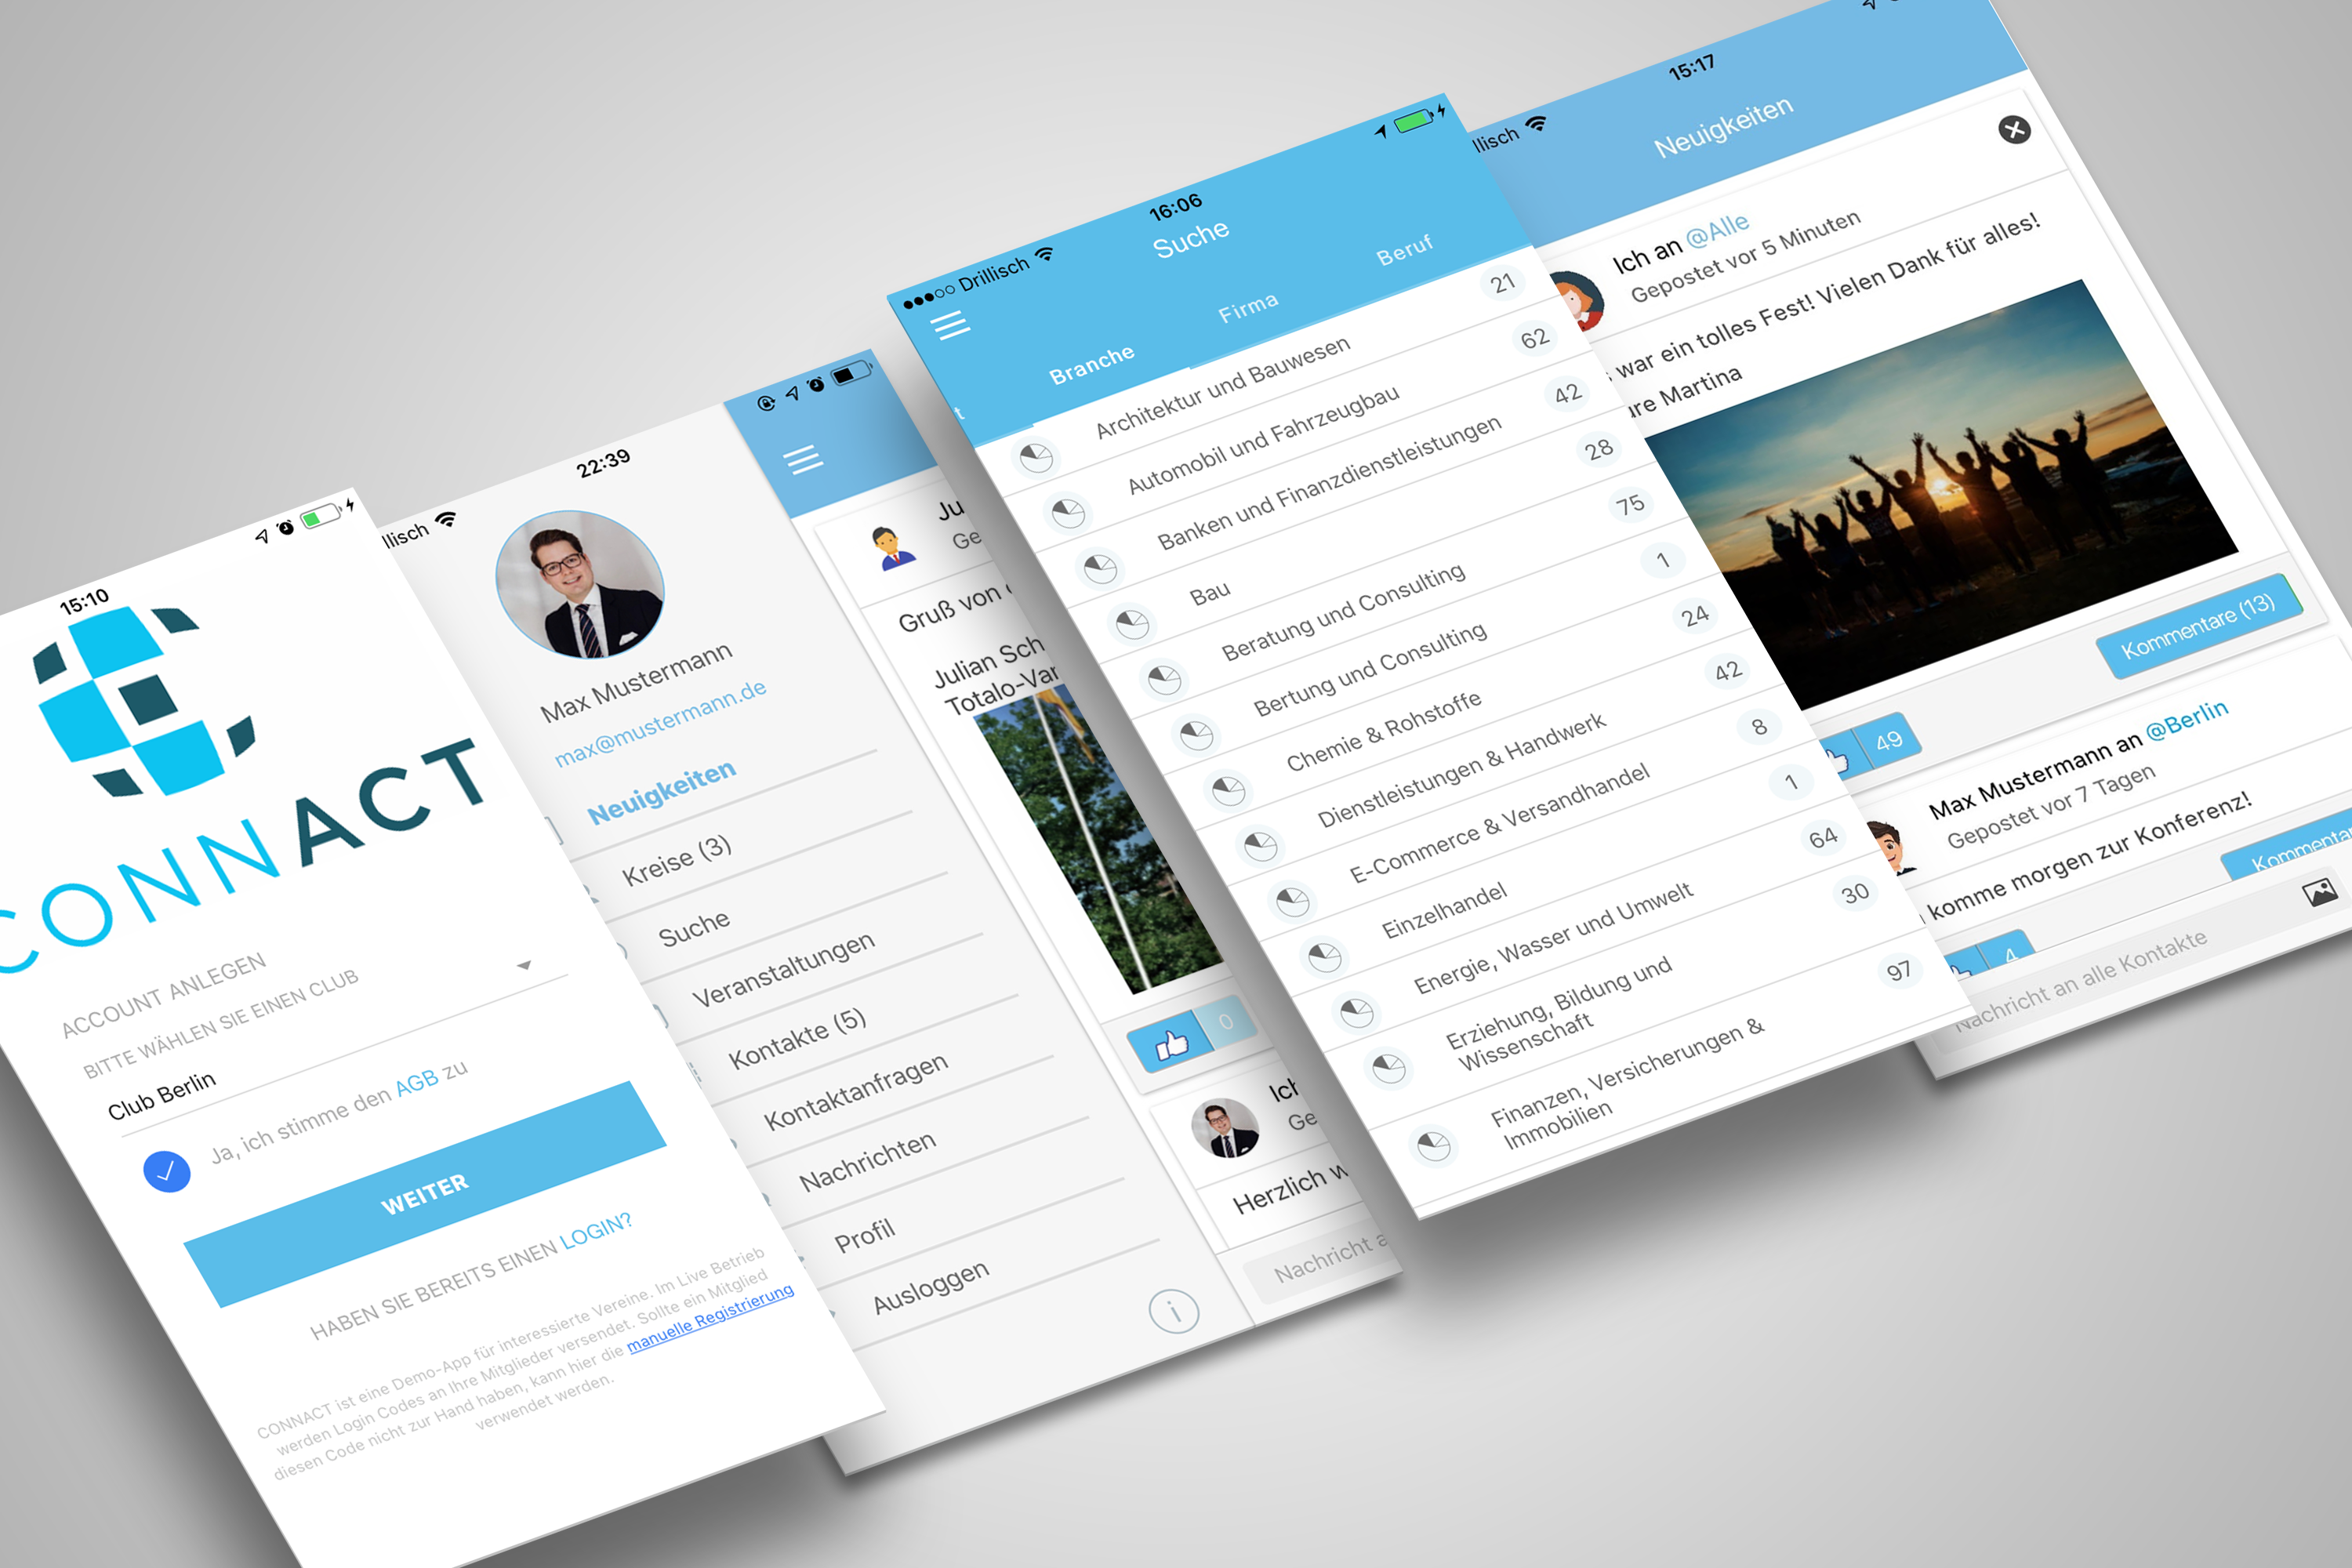 connact mobile app showcase